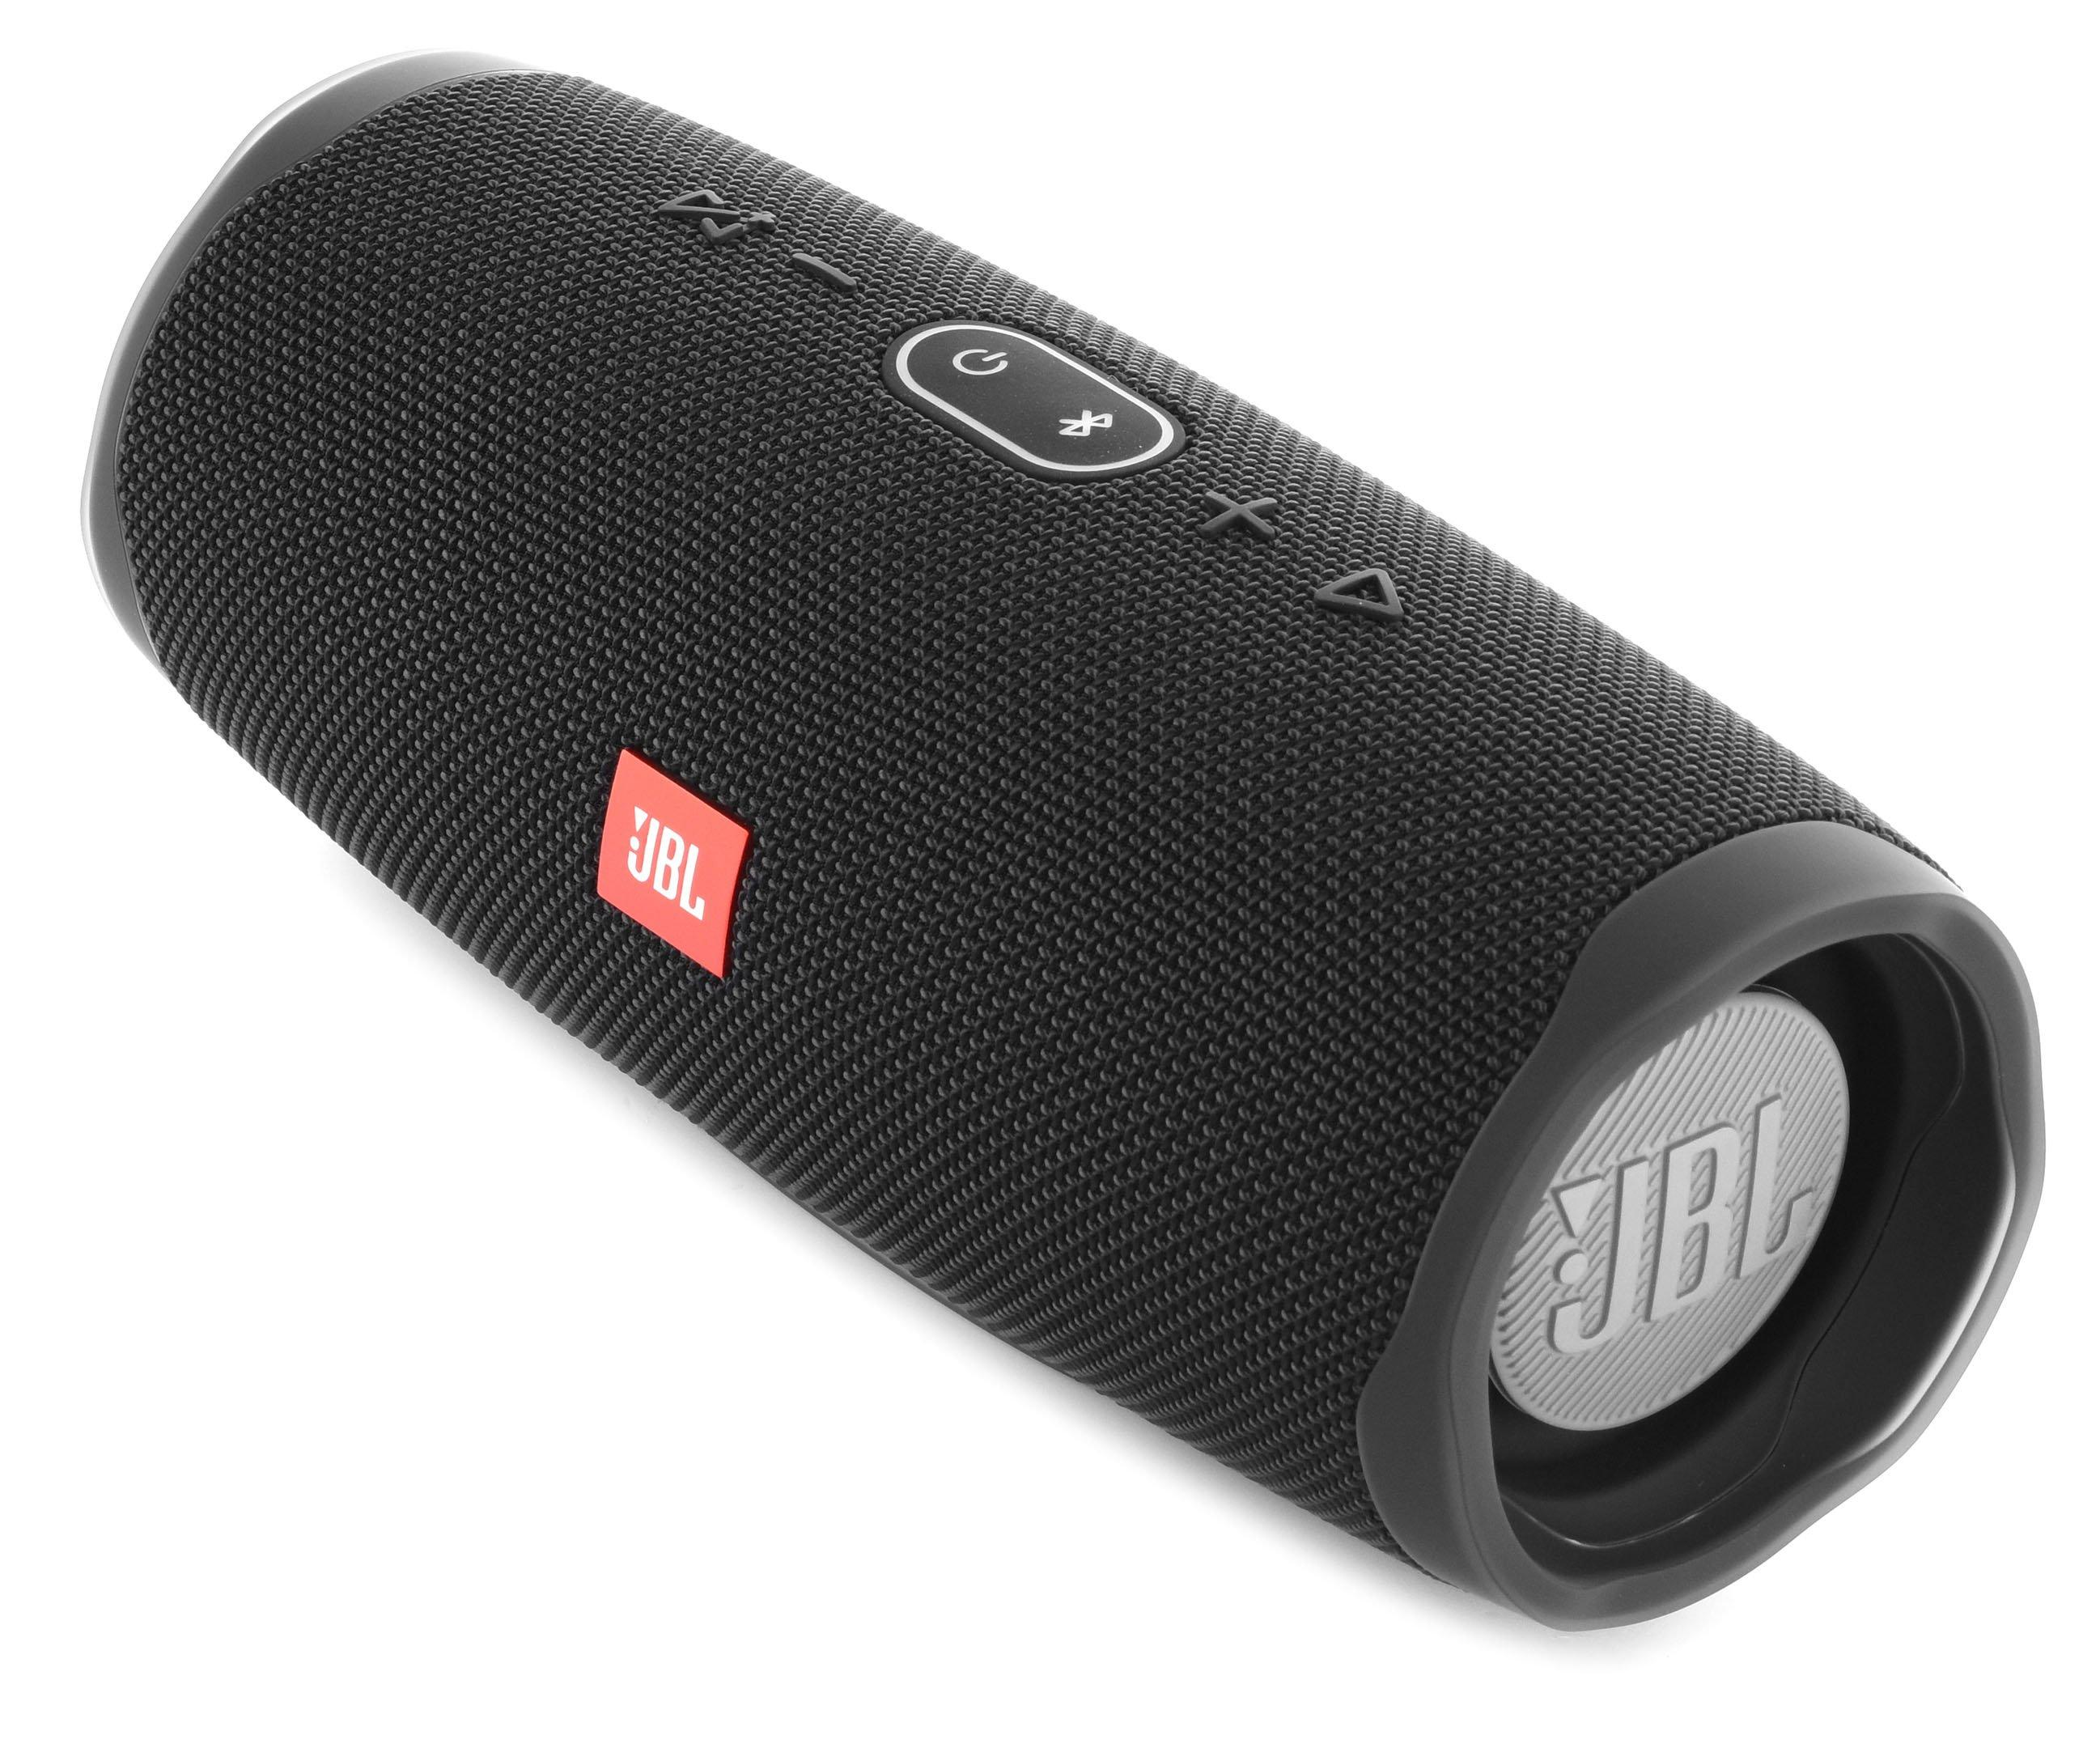 JBL Charge 9 Portable Wireless Bluetooth Speaker Black